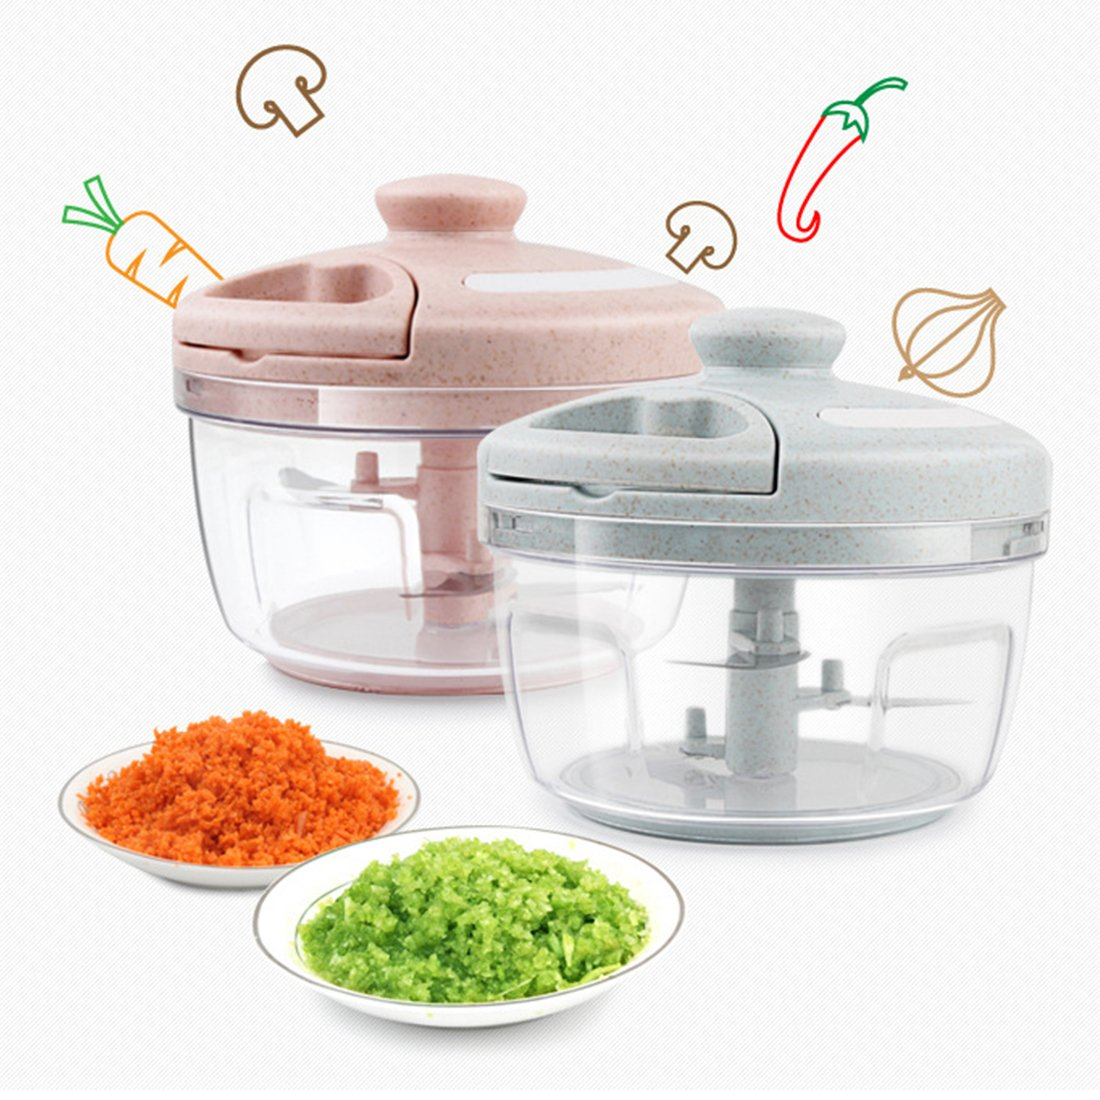 Momugs Multi-Functional Food Processor Manual Hand Food Chopper fast Salad Shredders Meat Grinder Kitchen Cooking tools for Baby kids